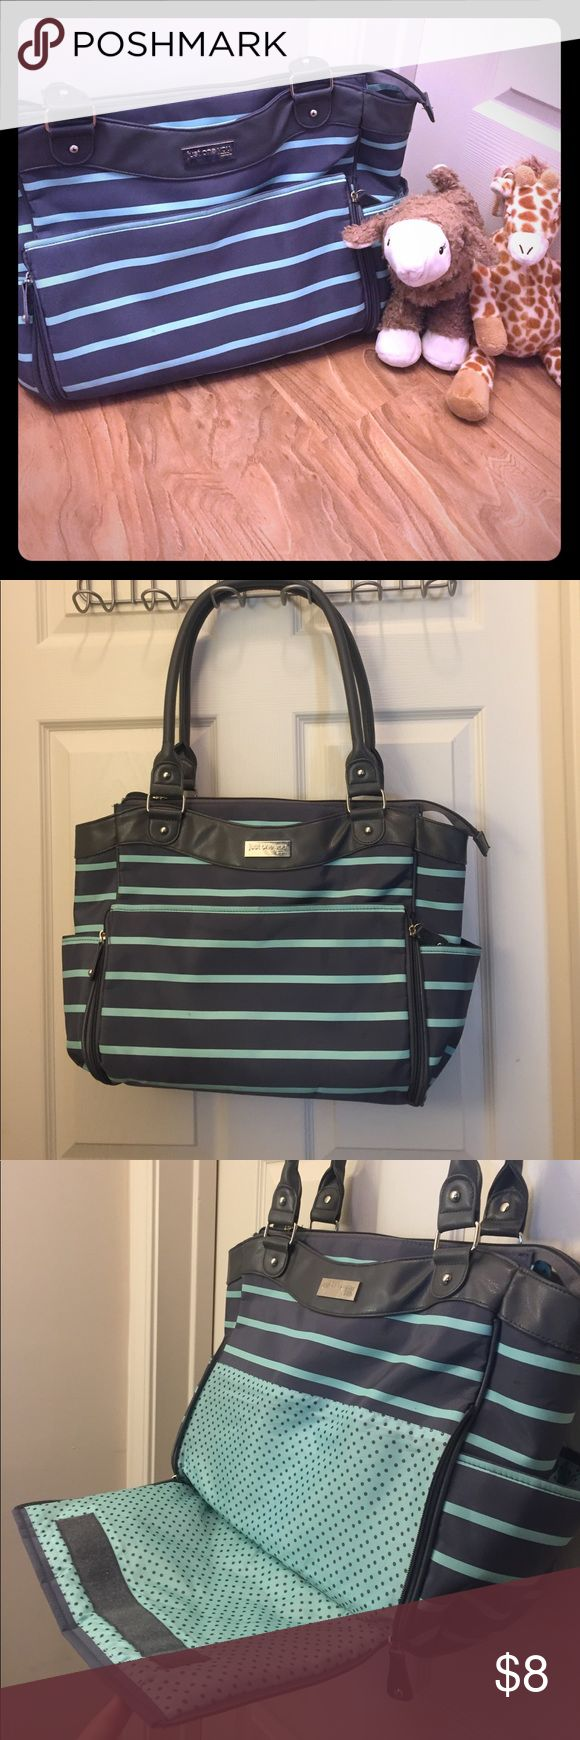 Carters Baby Diaper Bag In good condition. There's a pocket that unzips that used to have this mat that you can change a baby's diaper on, but that's missing. I would assume you can easily buy a replacement mat online. Lots of pockets to put things in. Carter's Other